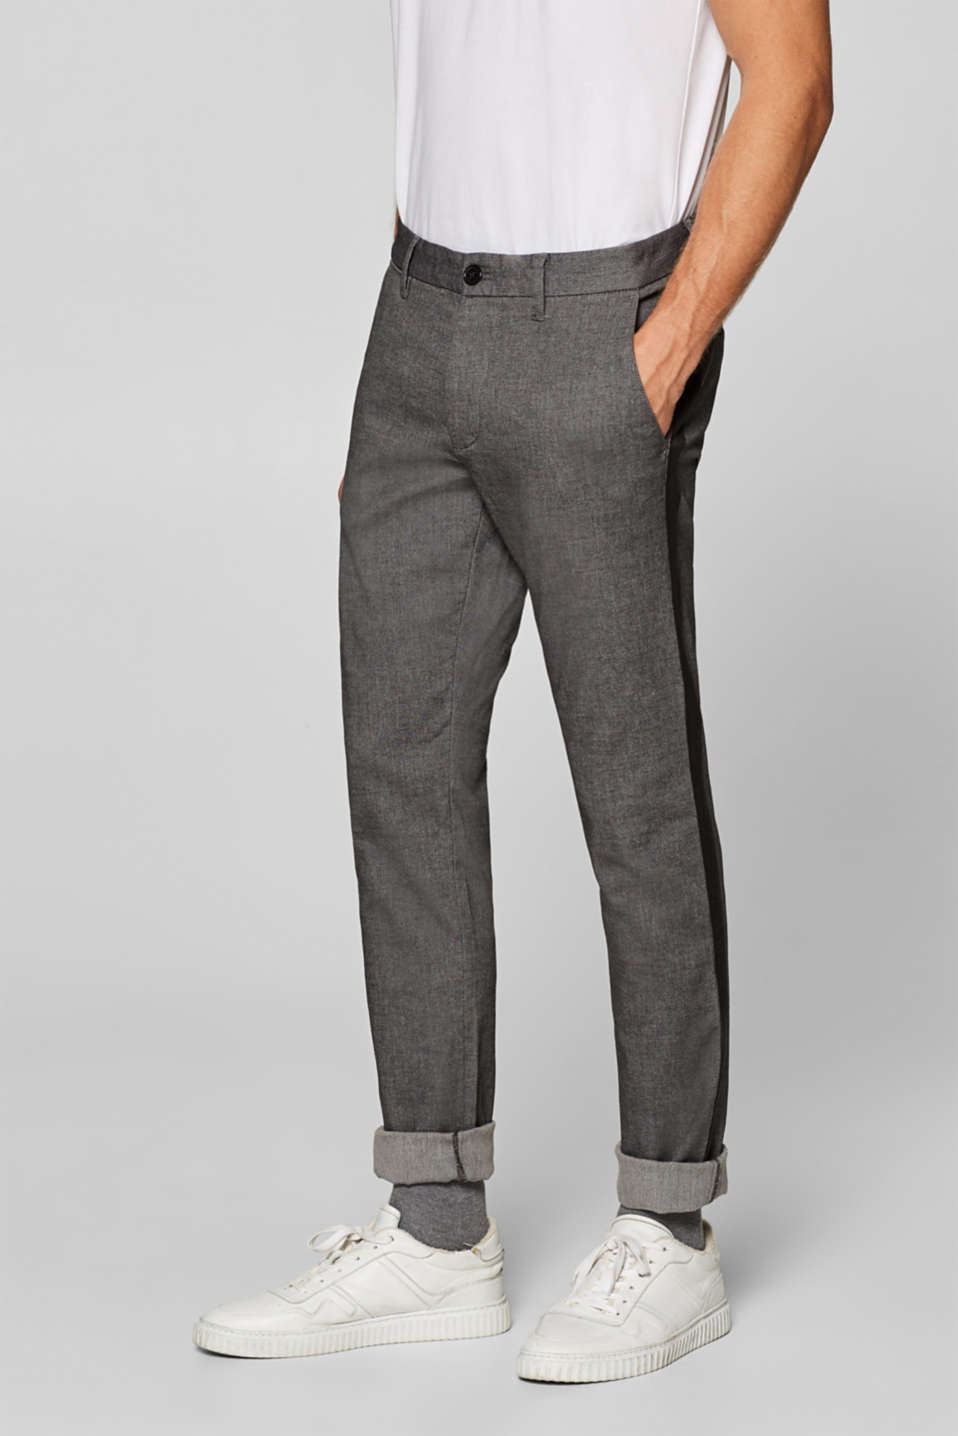 Esprit - Textured stretch trousers with side stripes